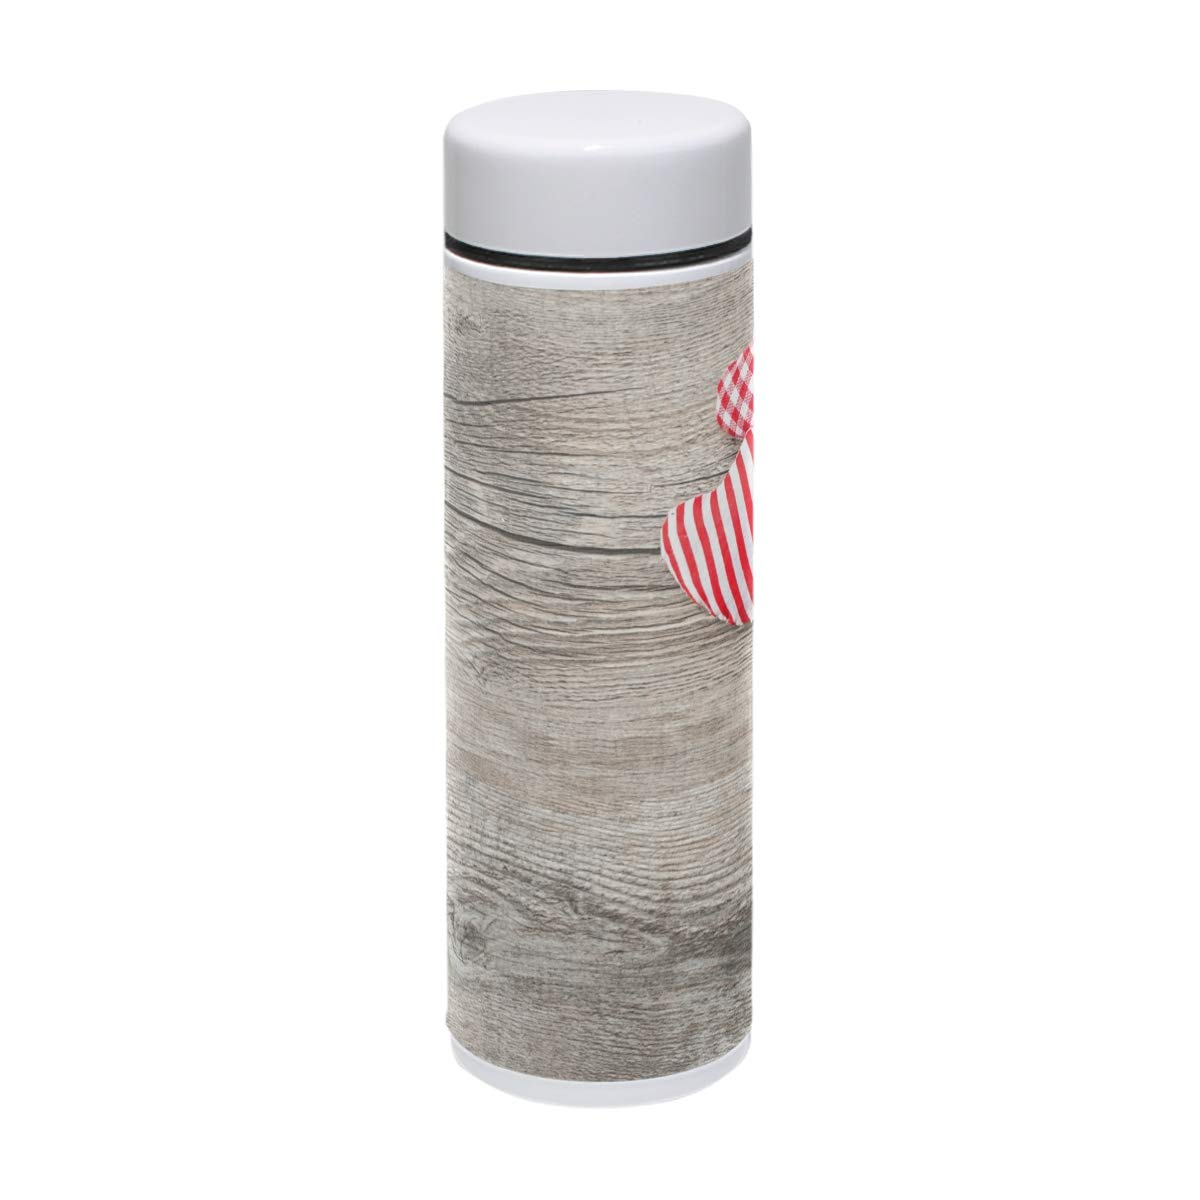 My Little Nest Stainless Steel Water Bottle Hearts On Wood Pattern Double Walled Vacuum Insulated 7.5 oz Bottle Hot 12 Hours Cold 24 Hours